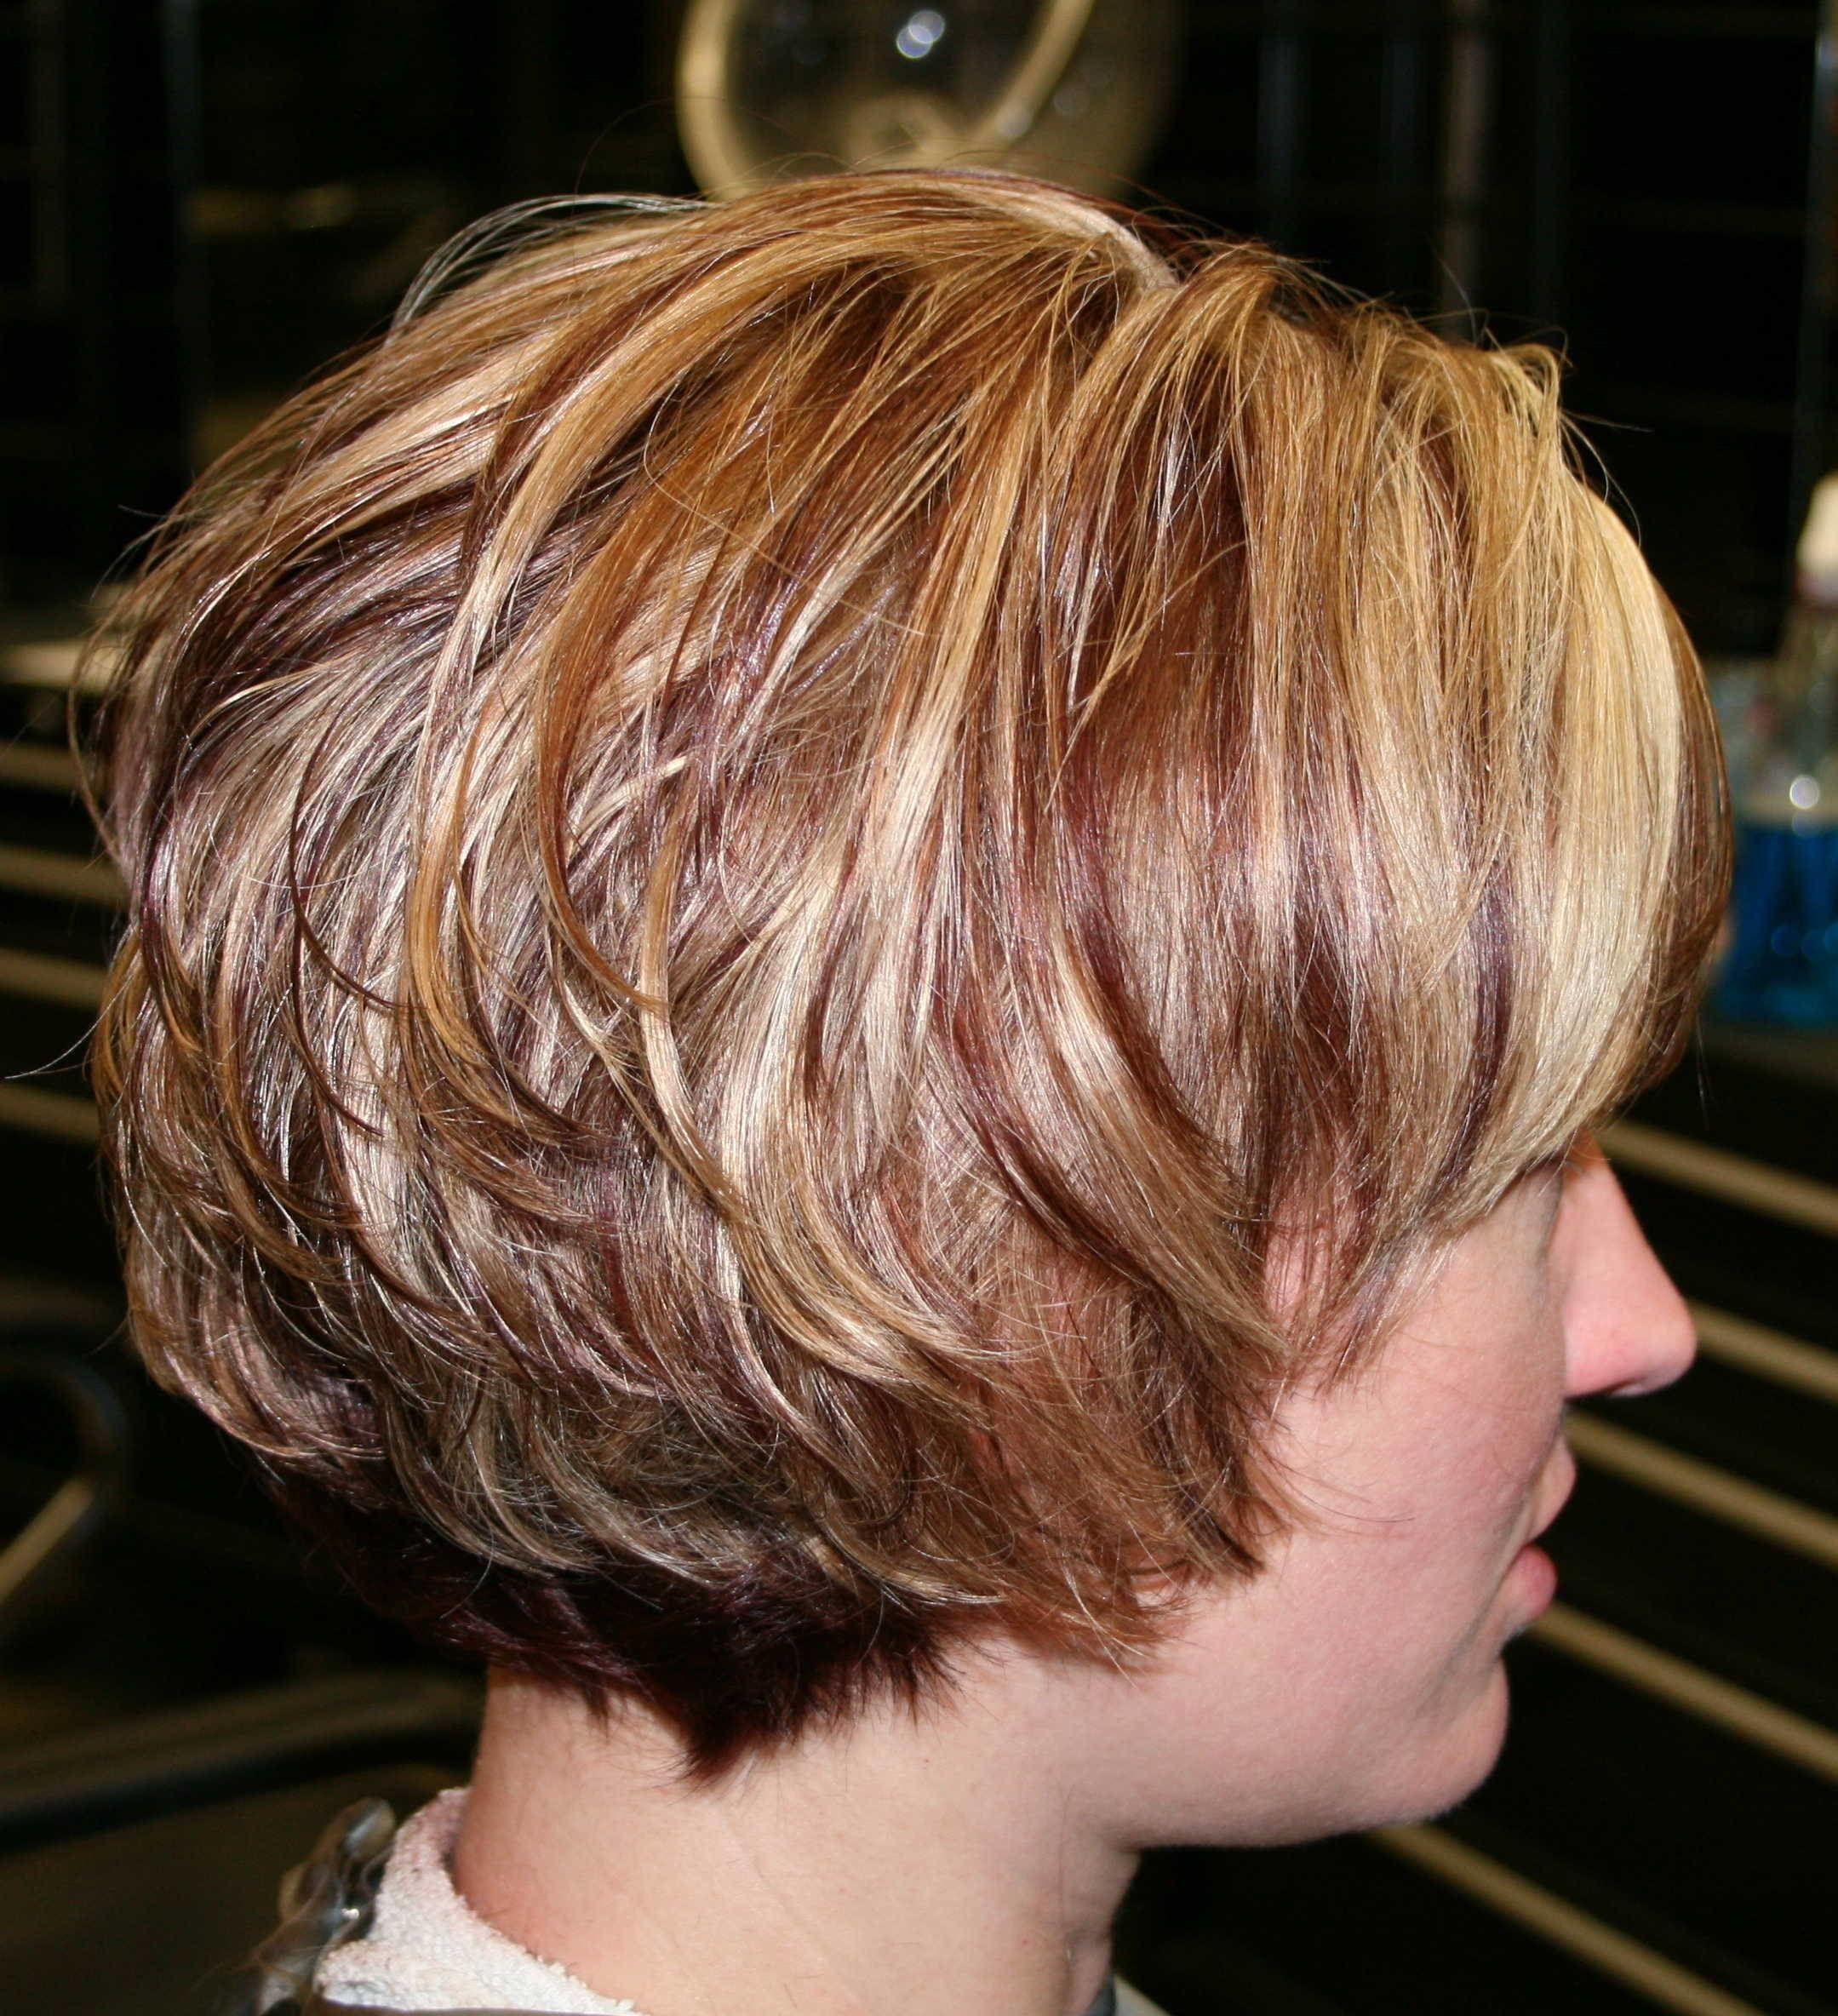 New Short Layered Bob Hairstyles Front And Back View New Haircut For Men 2019 Ideas With Pictures